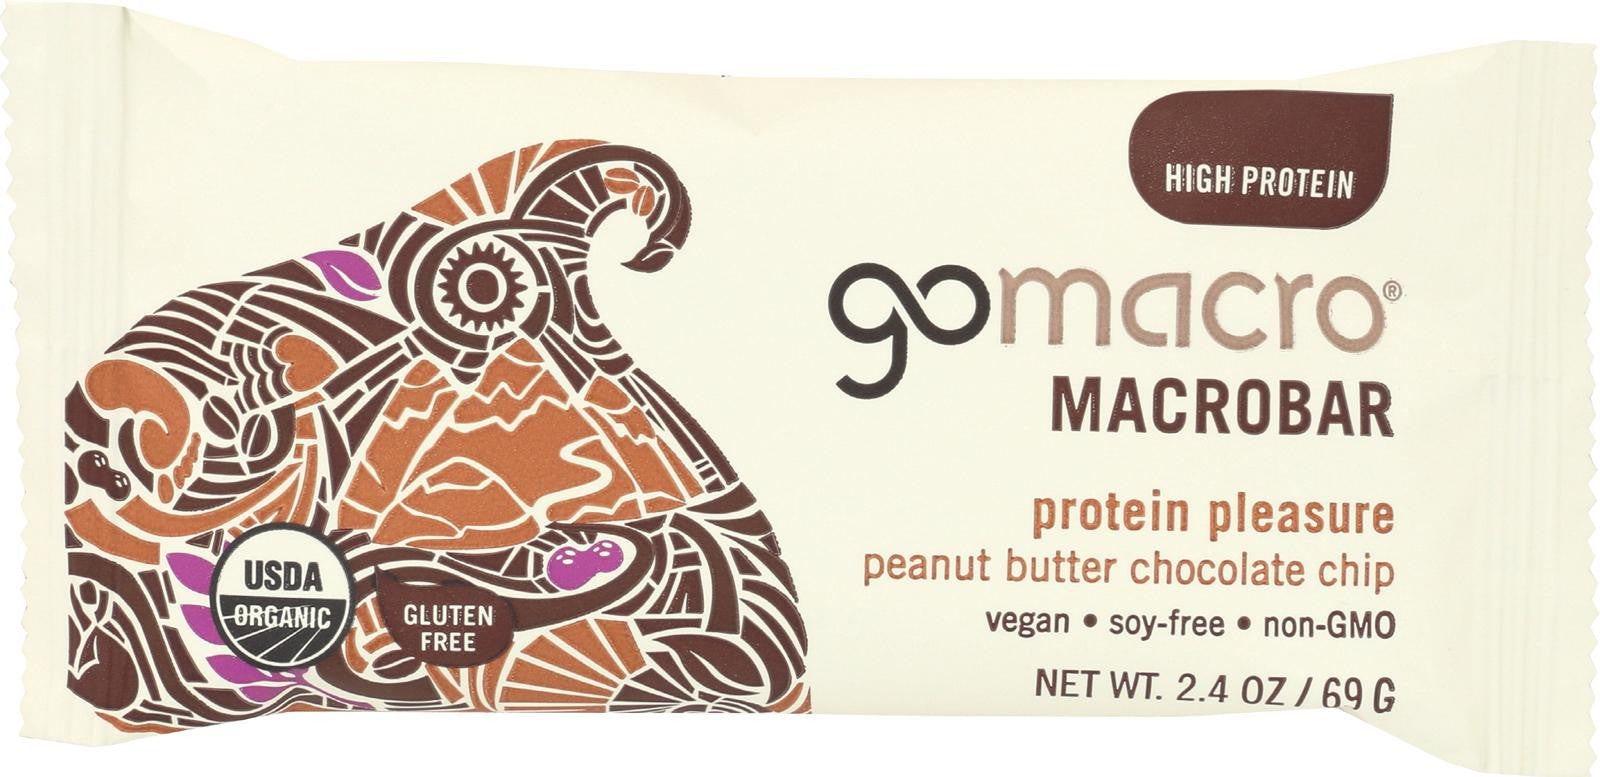 GOMACRO - Protein Pleasure (Peanut Butter & Chocolate Chips)